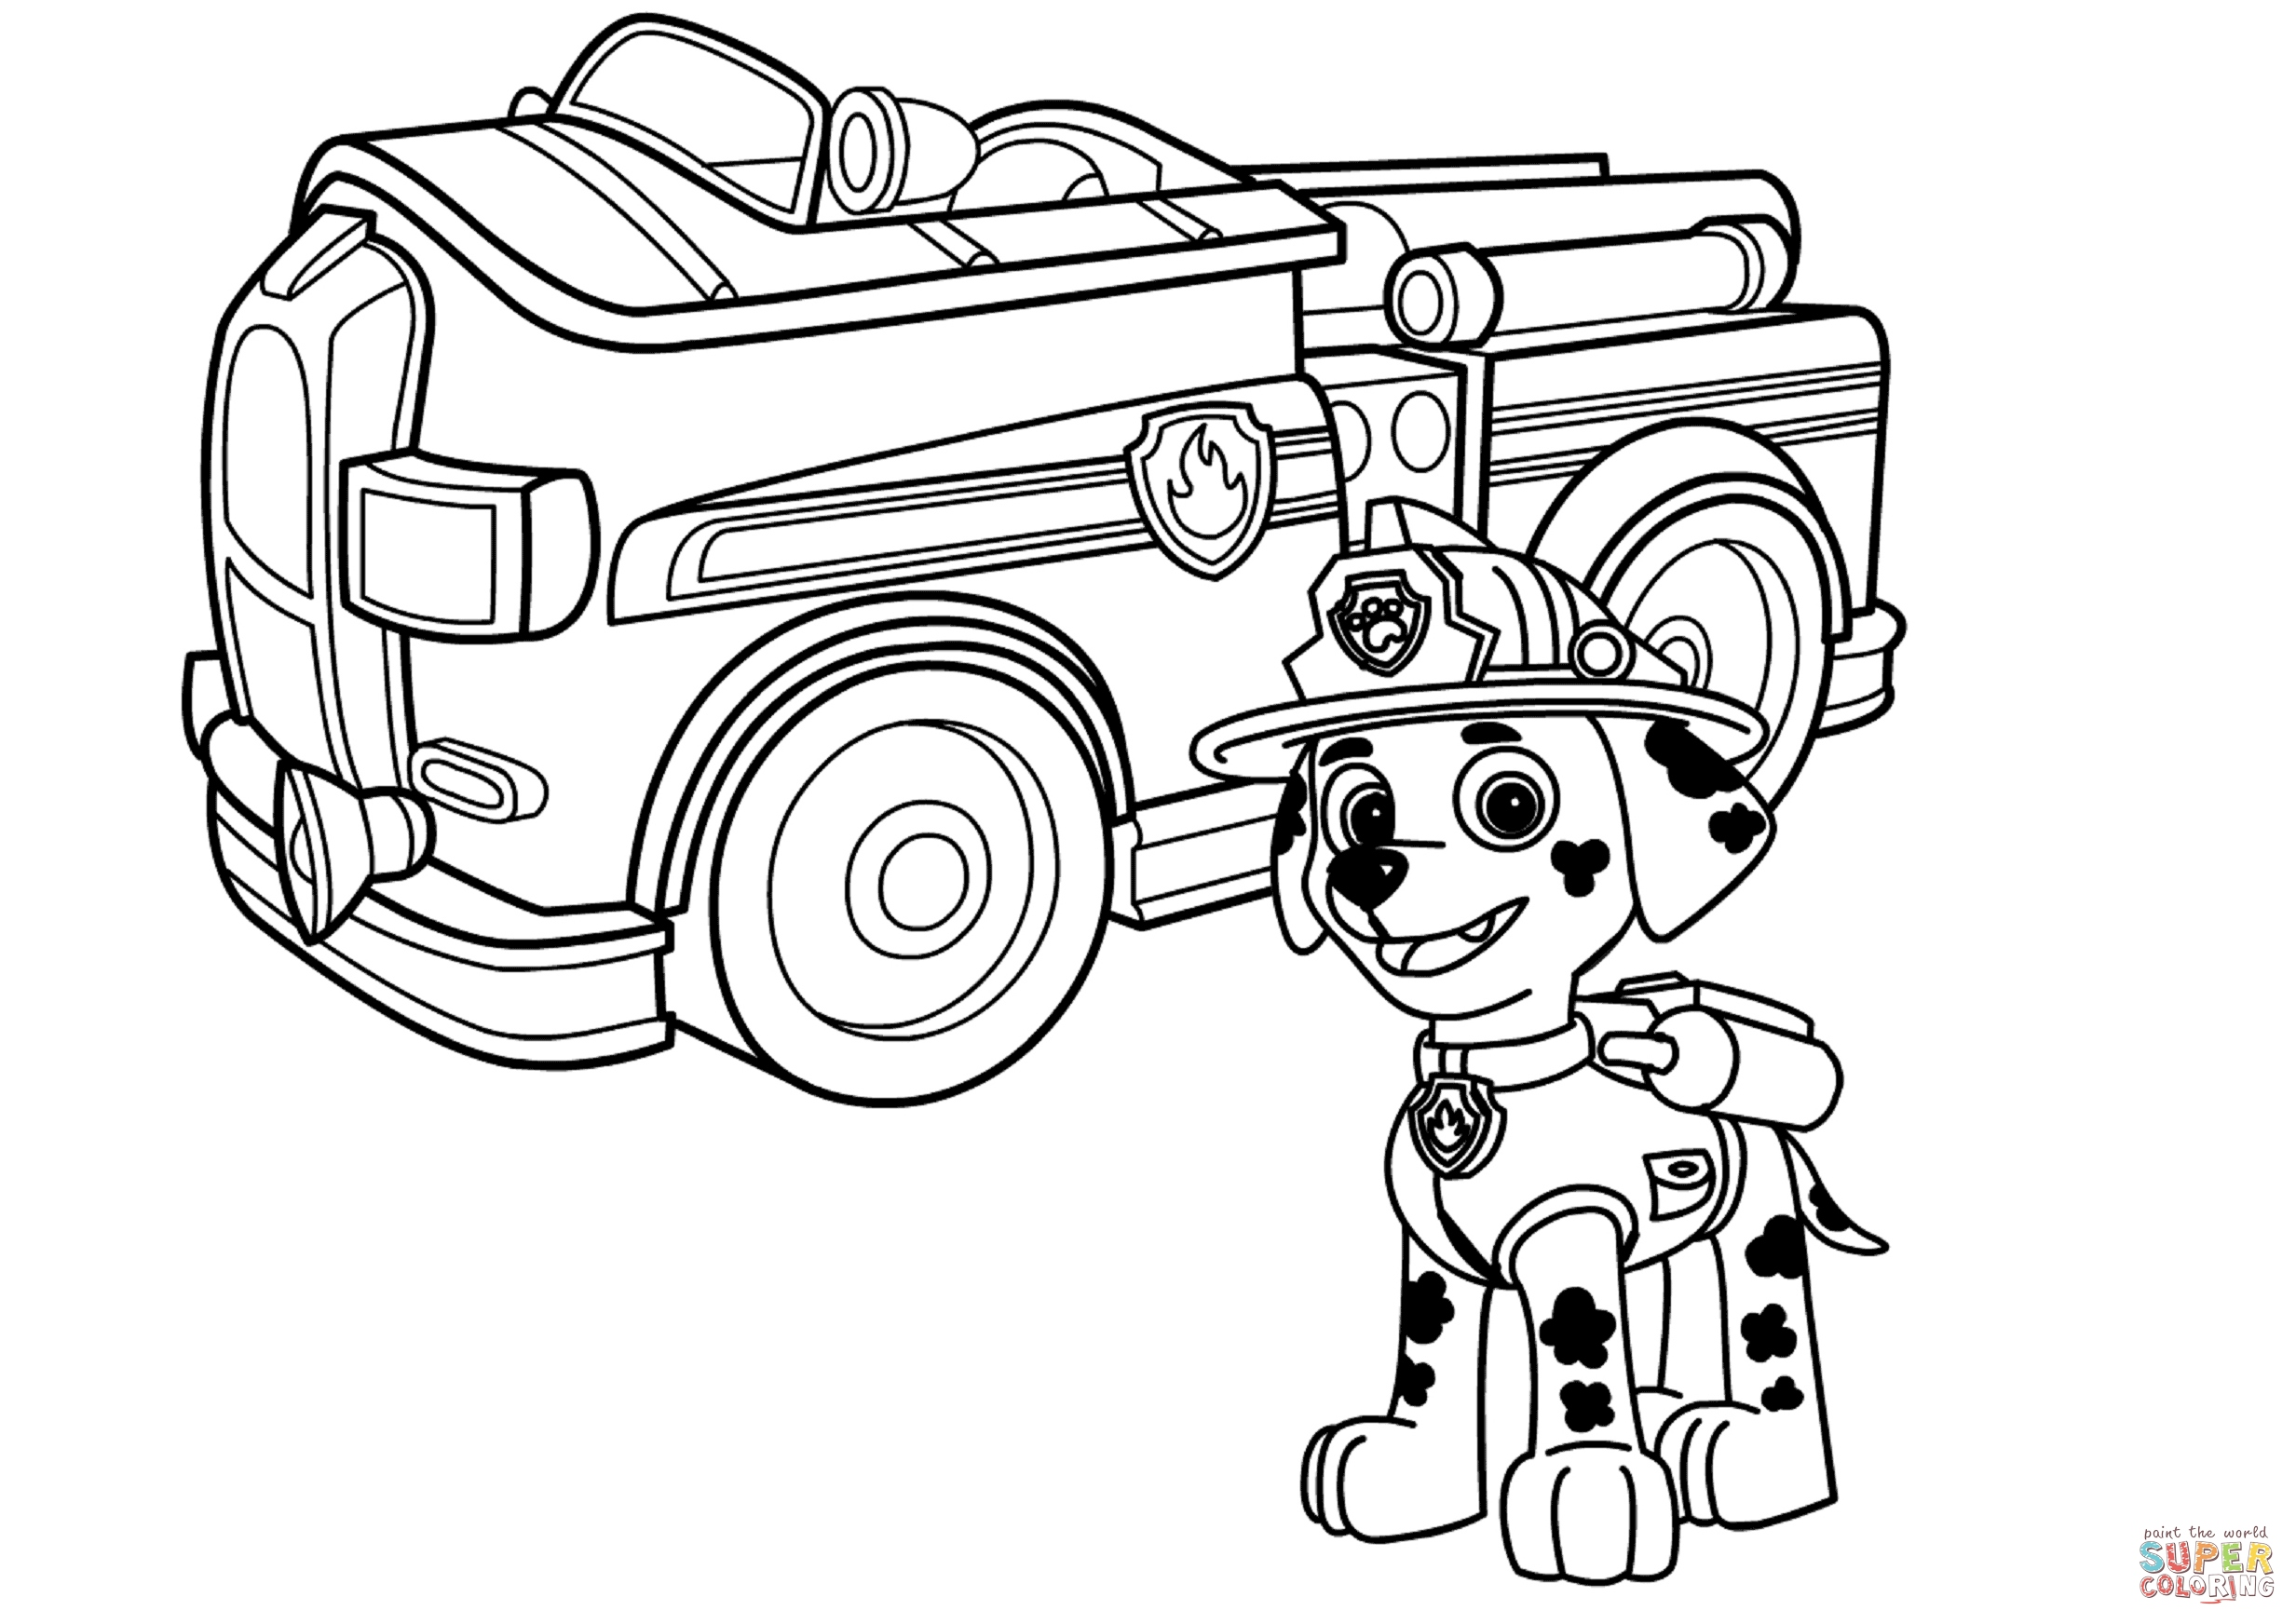 coloring page fire truck beautiful fire truck coloring page for kids truck page fire coloring